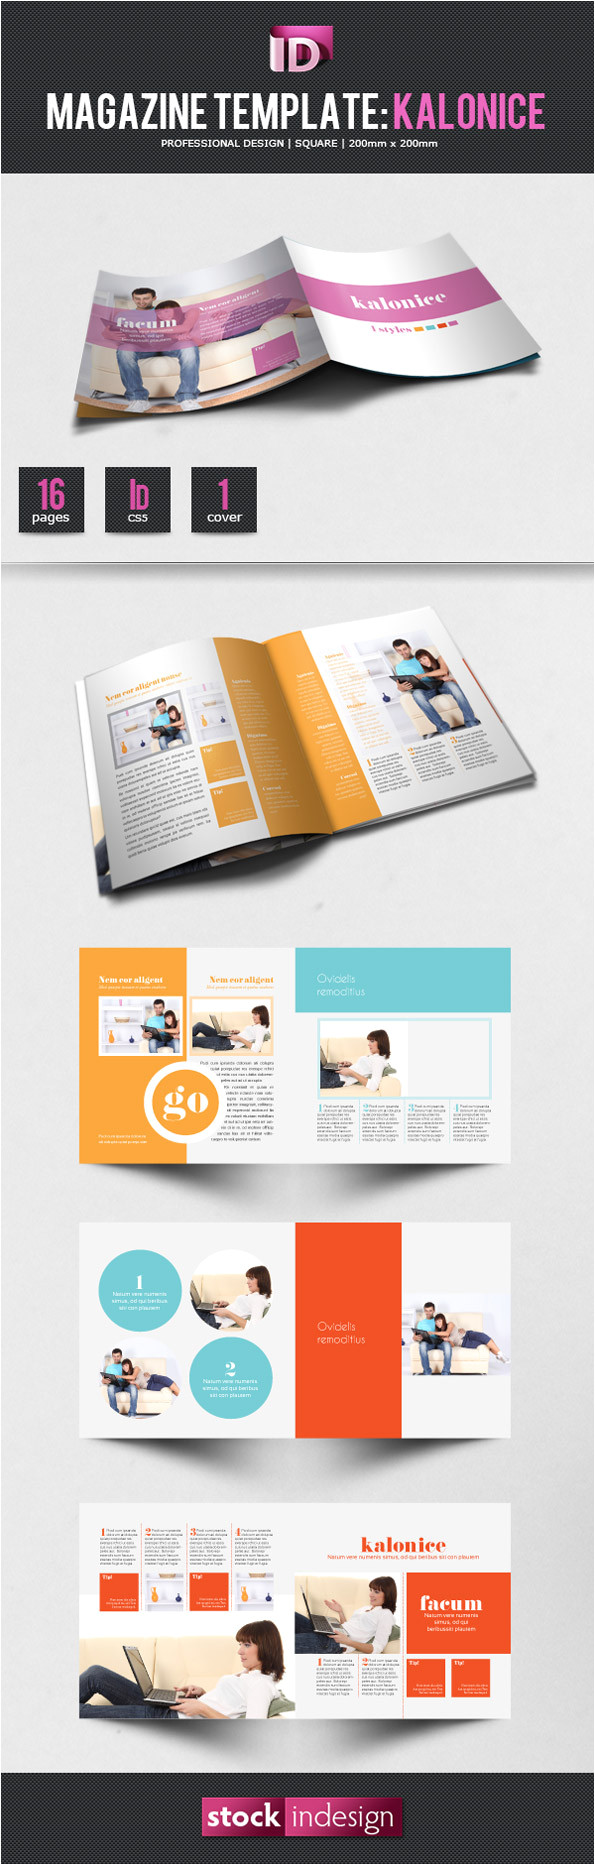 e magazine template free download